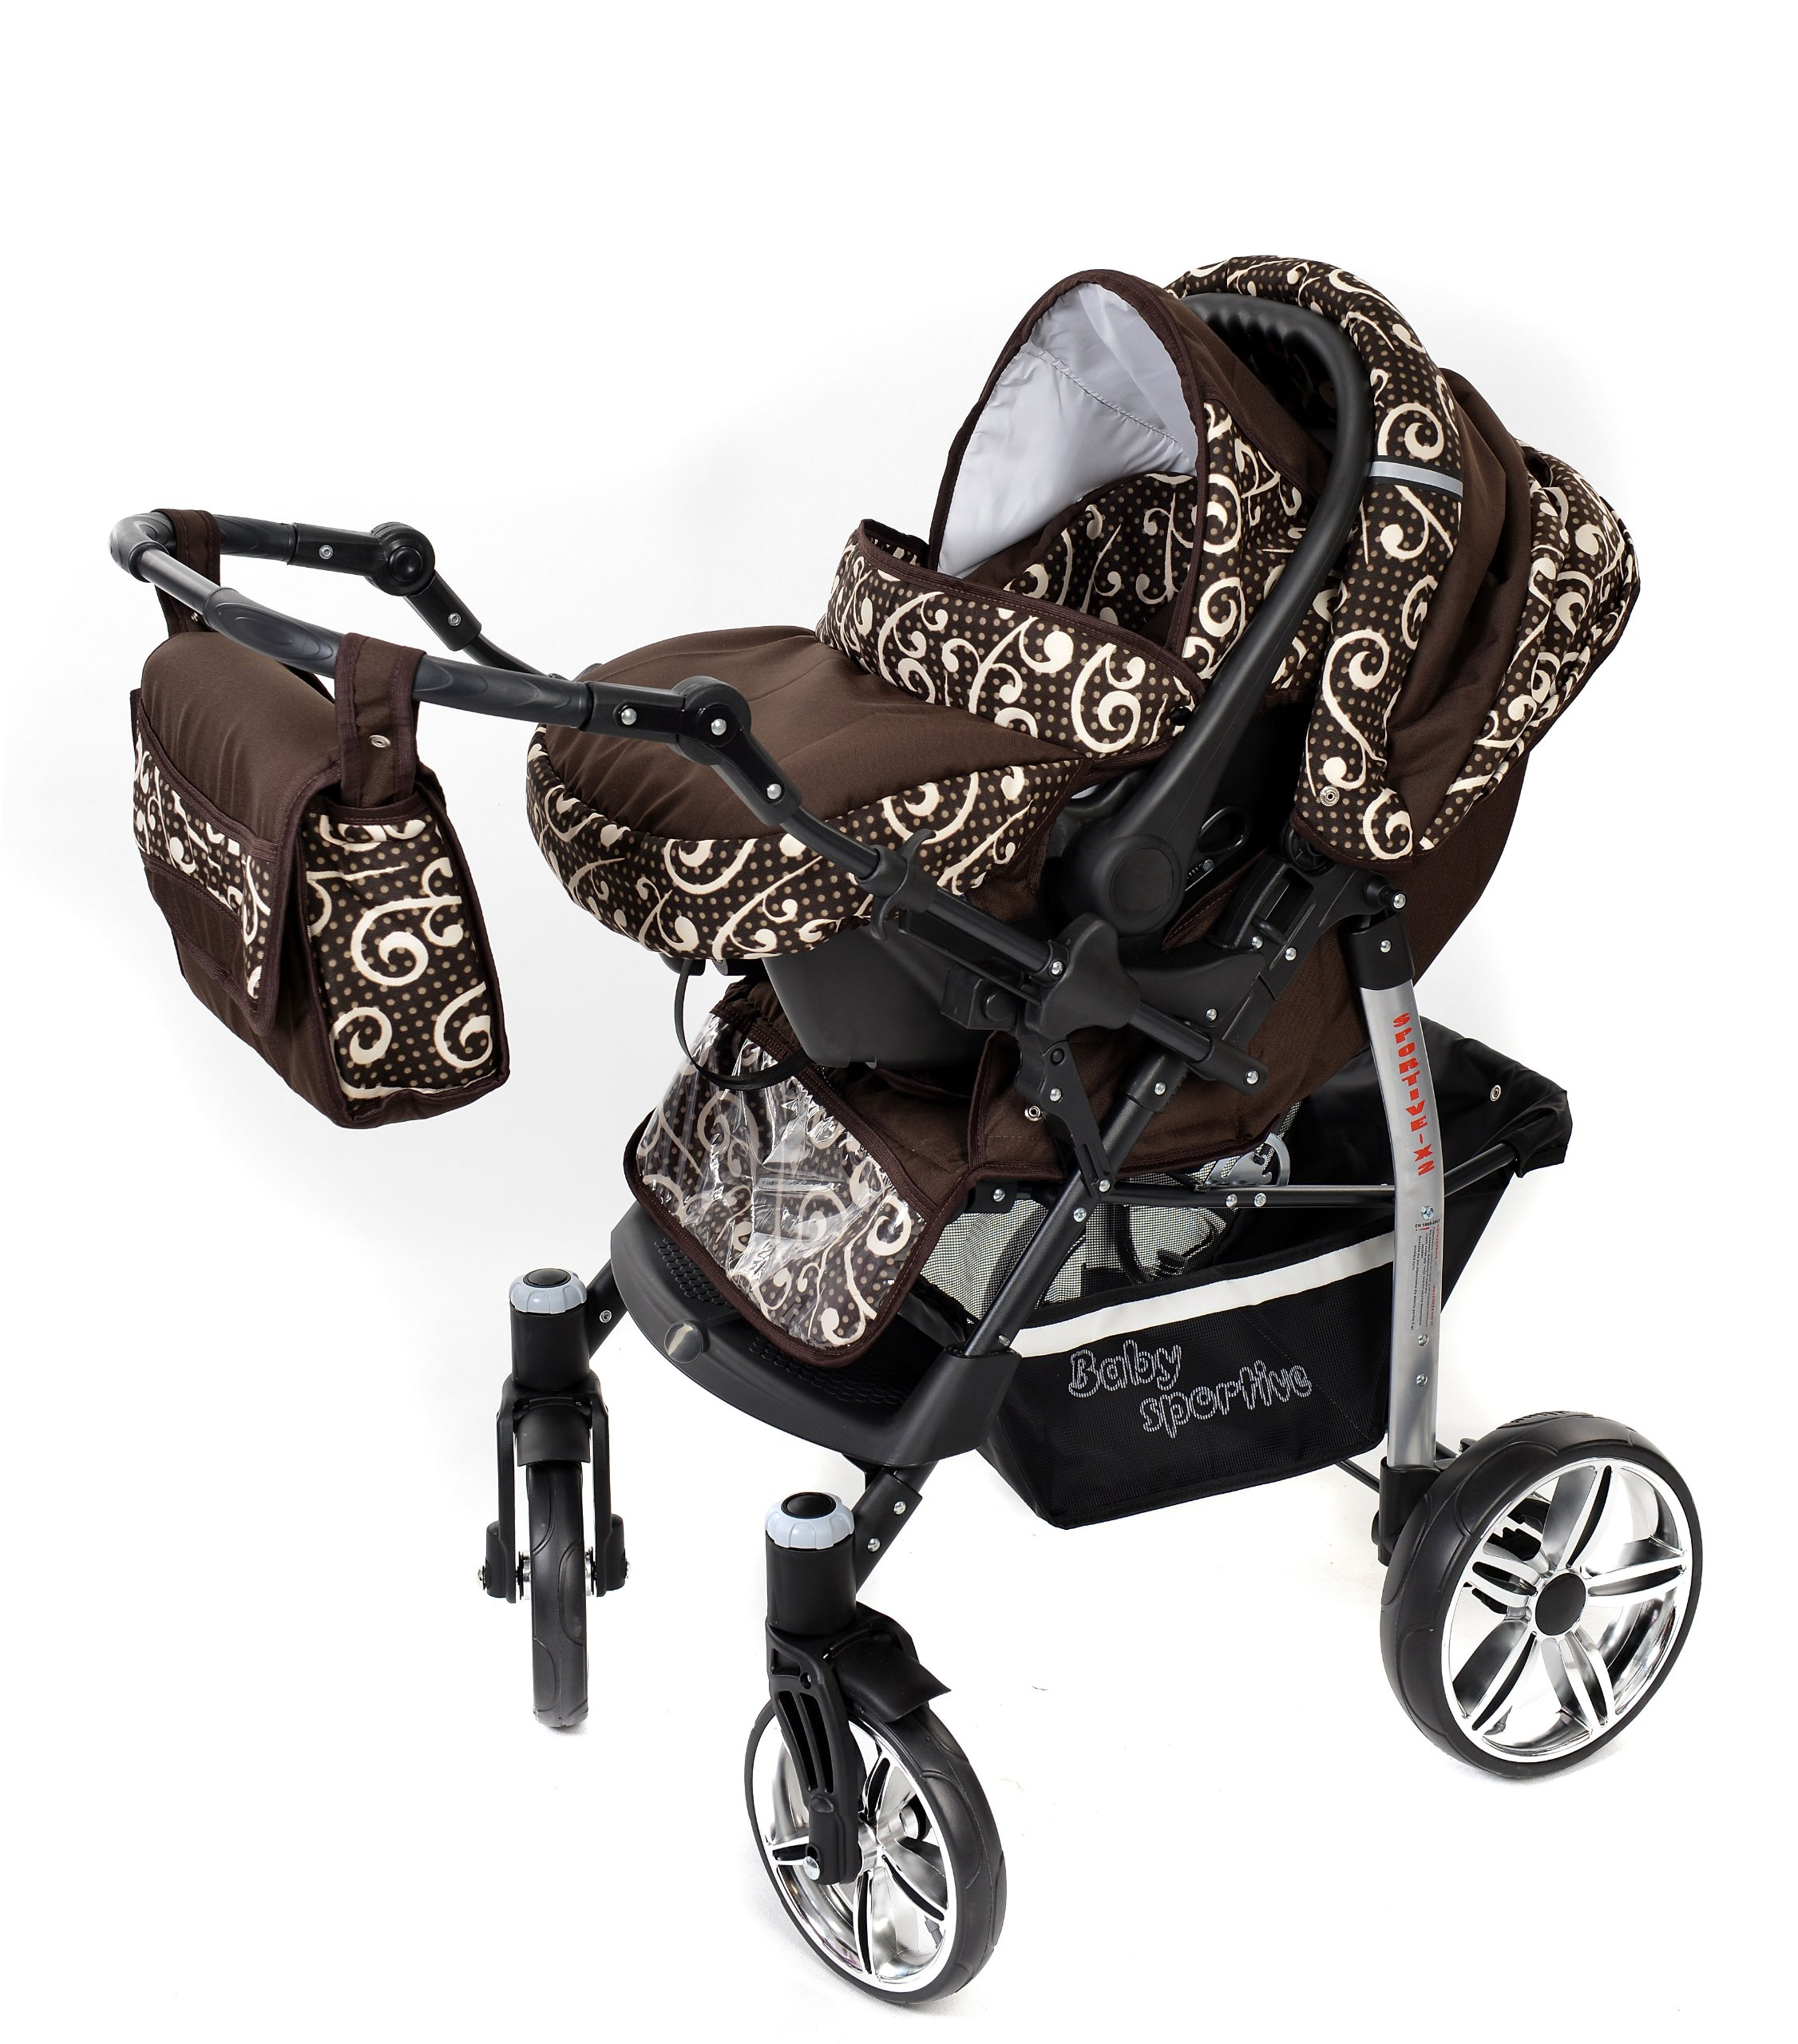 Sportive X2, 3-in-1 Travel System incl. Baby Pram with Swivel Wheels, Car Seat, Pushchair & Accessories (3-in-1 Travel System, Brown & Wawy Lines)  3 in 1 Travel System All in One Set - Pram, Car Carrier Seat and Sport Buggy + Accessories: carrier bag, rain protection, mosquito net, changing mat, removable bottle holder and removable tray for your child's bits and pieces Suitable from birth, Easy Quick Folding System; Large storage basket; Turnable handle bar that allows to face or rear the drive direction; Quick release rear wheels for easy cleaning after muddy walks Front lockable 360o swivel wheels for manoeuvrability , Small sized when folded, fits into many small car trunks, Carry-cot with a removable hood, Reflective elements for better visibility 6